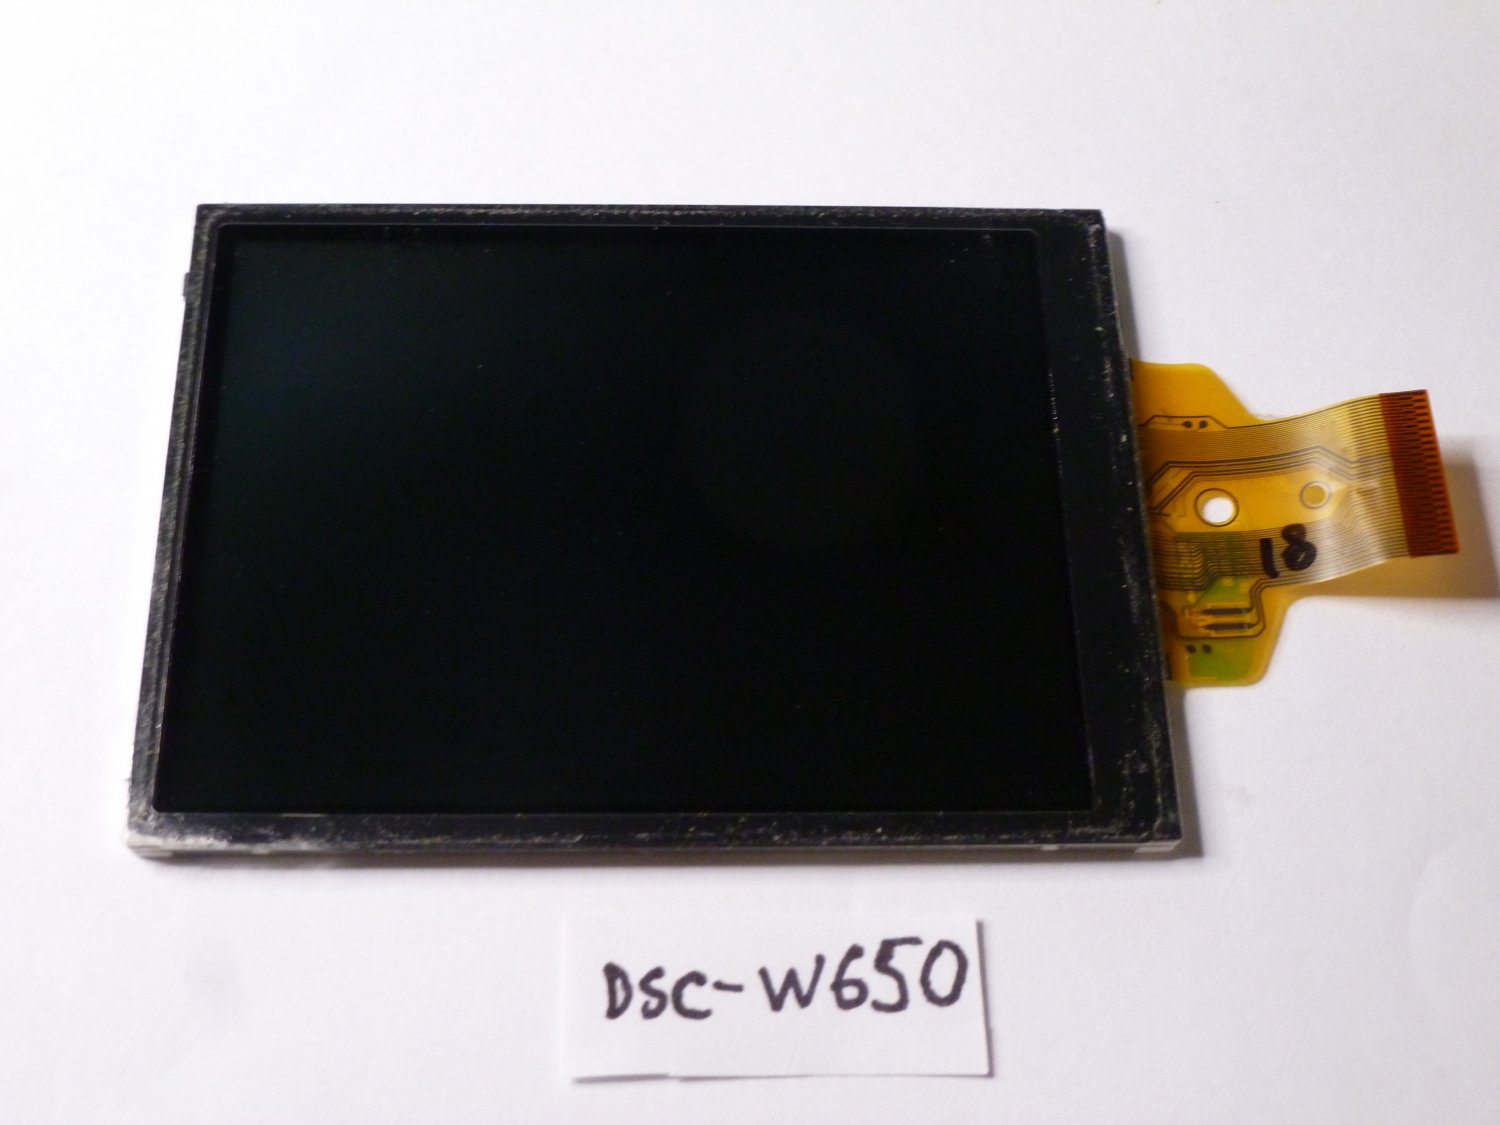 Sony DSC-W650 LCD Display Screen